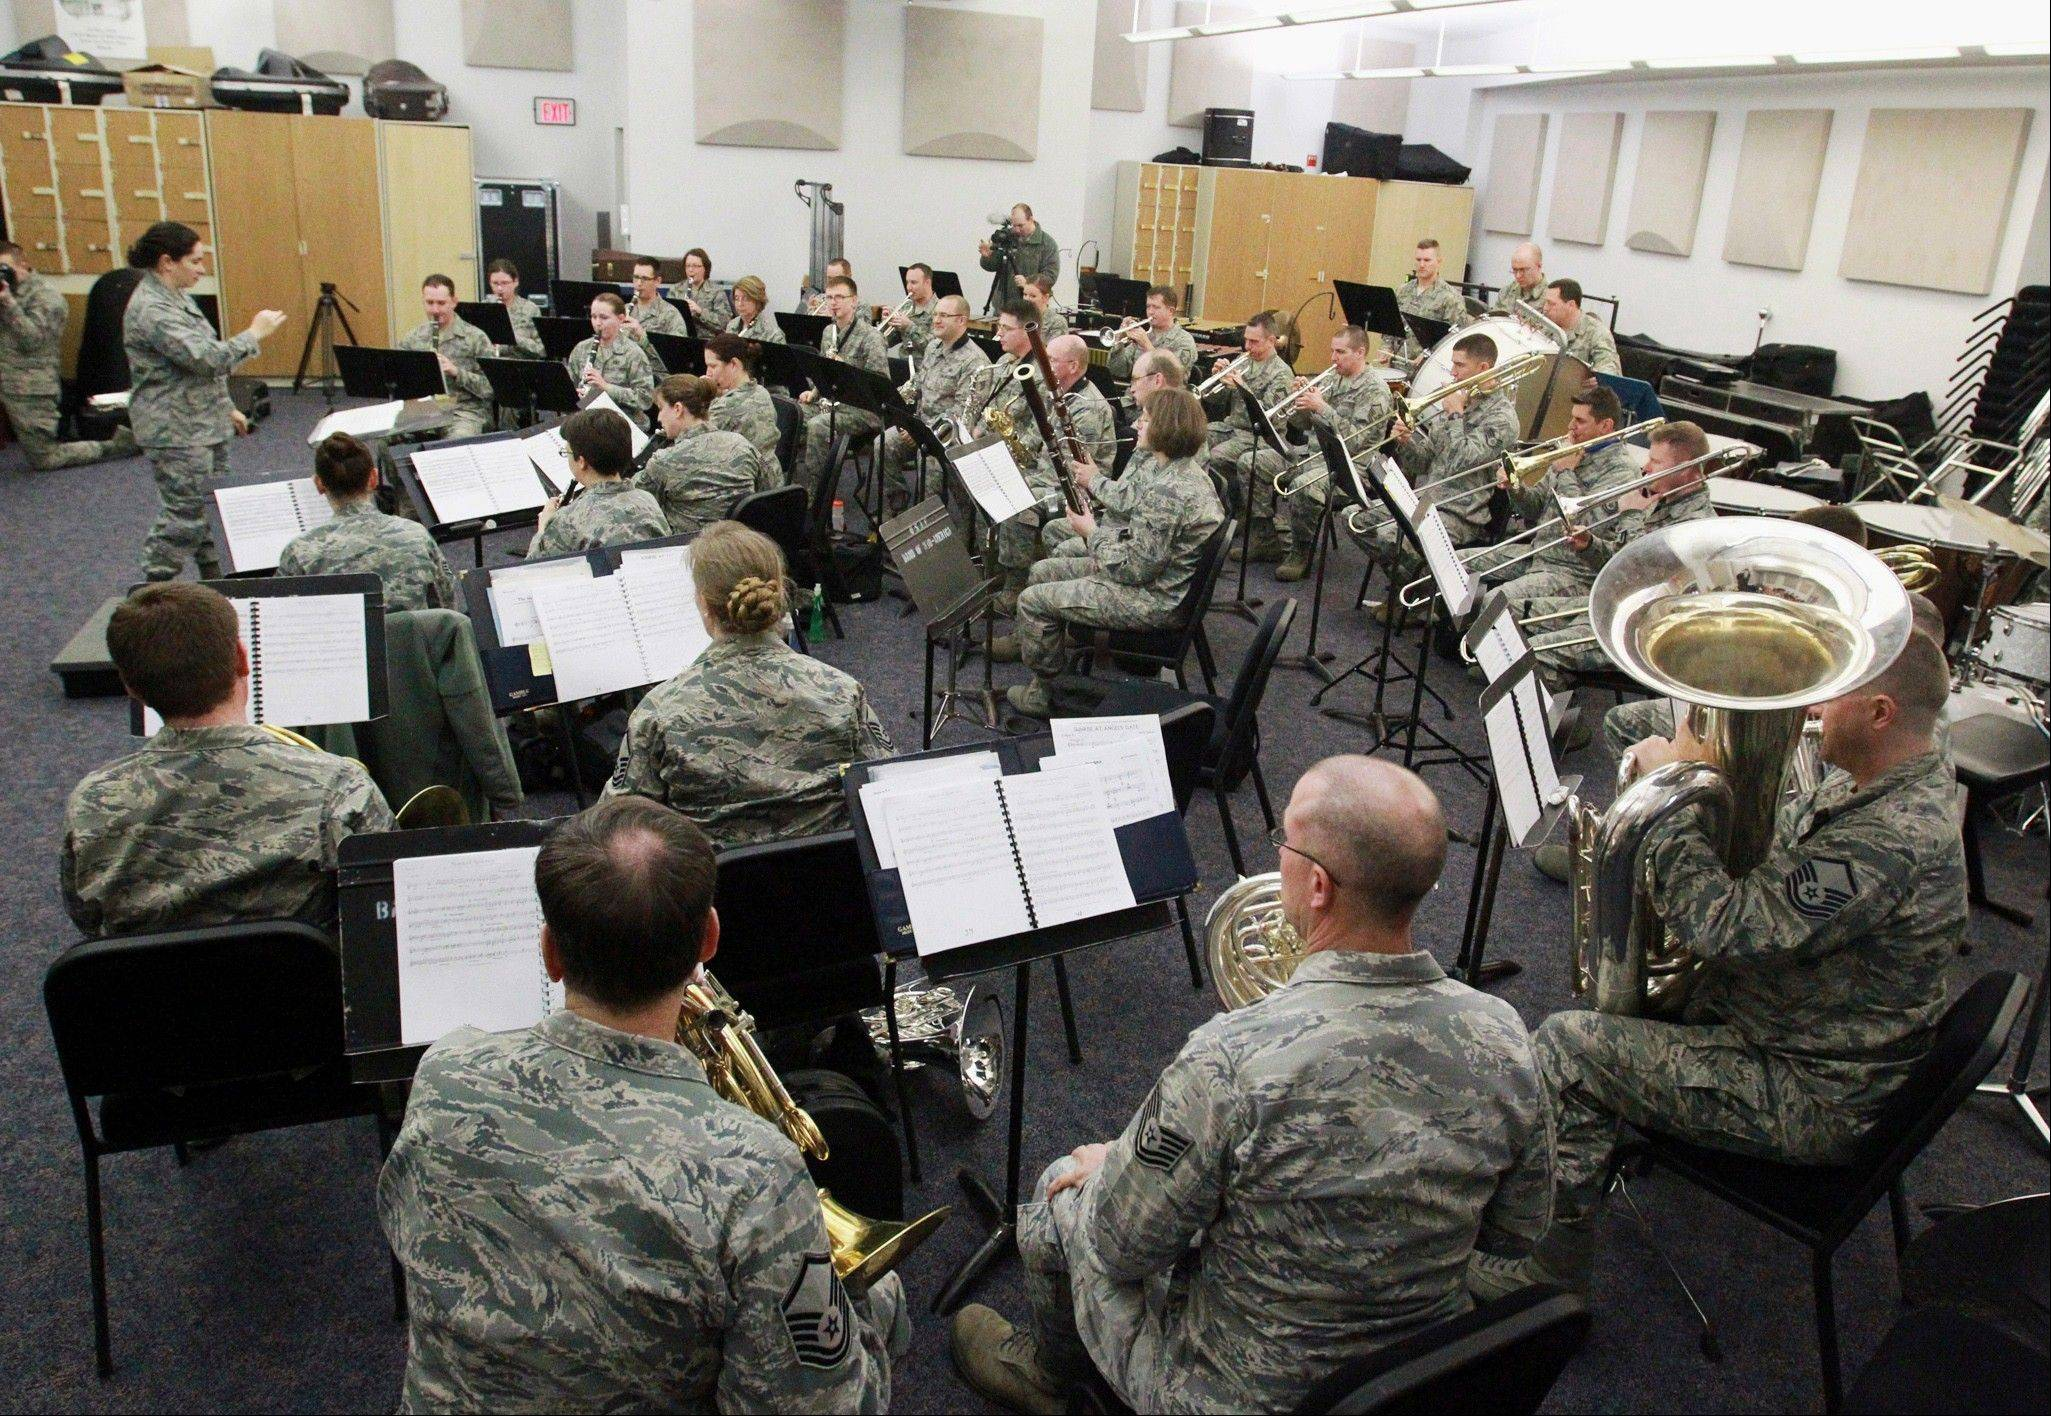 The U.S. Air Force Band of Mid-America under the direction of Maj. Cristina Moore Urrutia perform for special guest Robert Geggie at Scott Air Force Base, Ill.